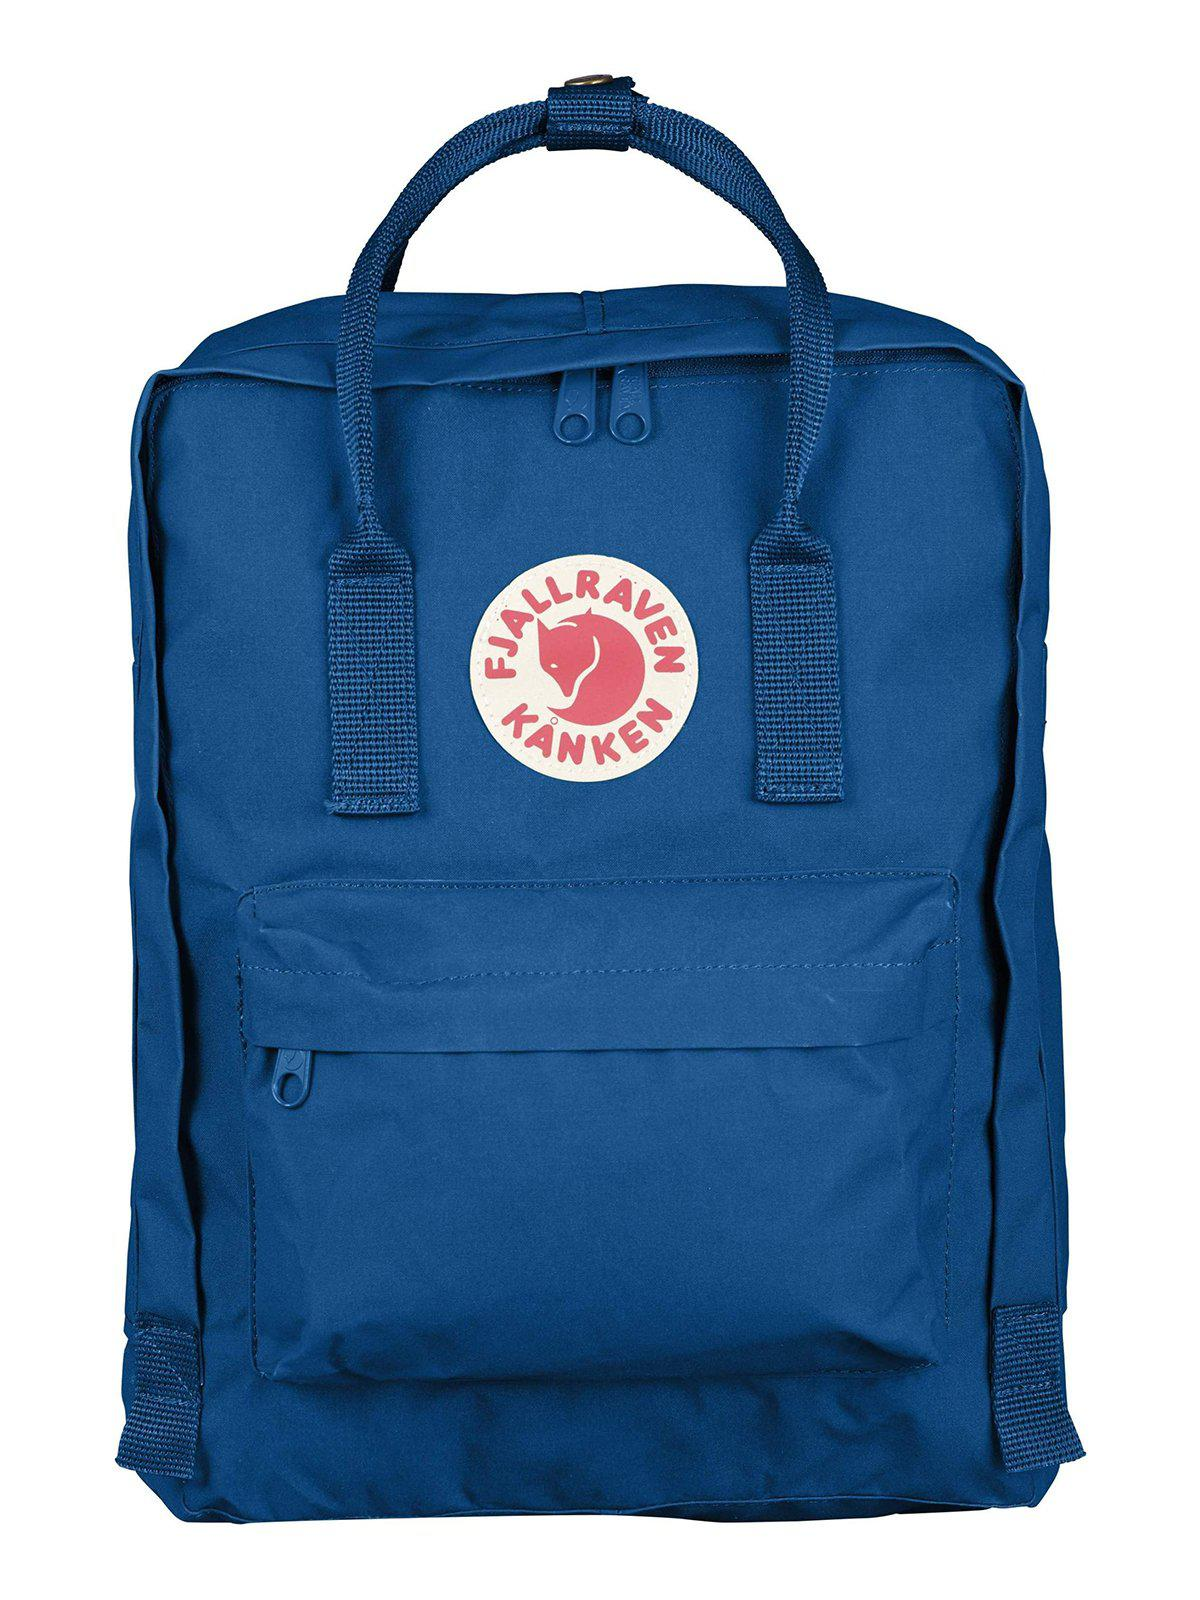 Fjallraven Kanken Classic Backpack Lake Blue - MORE by Morello Indonesia